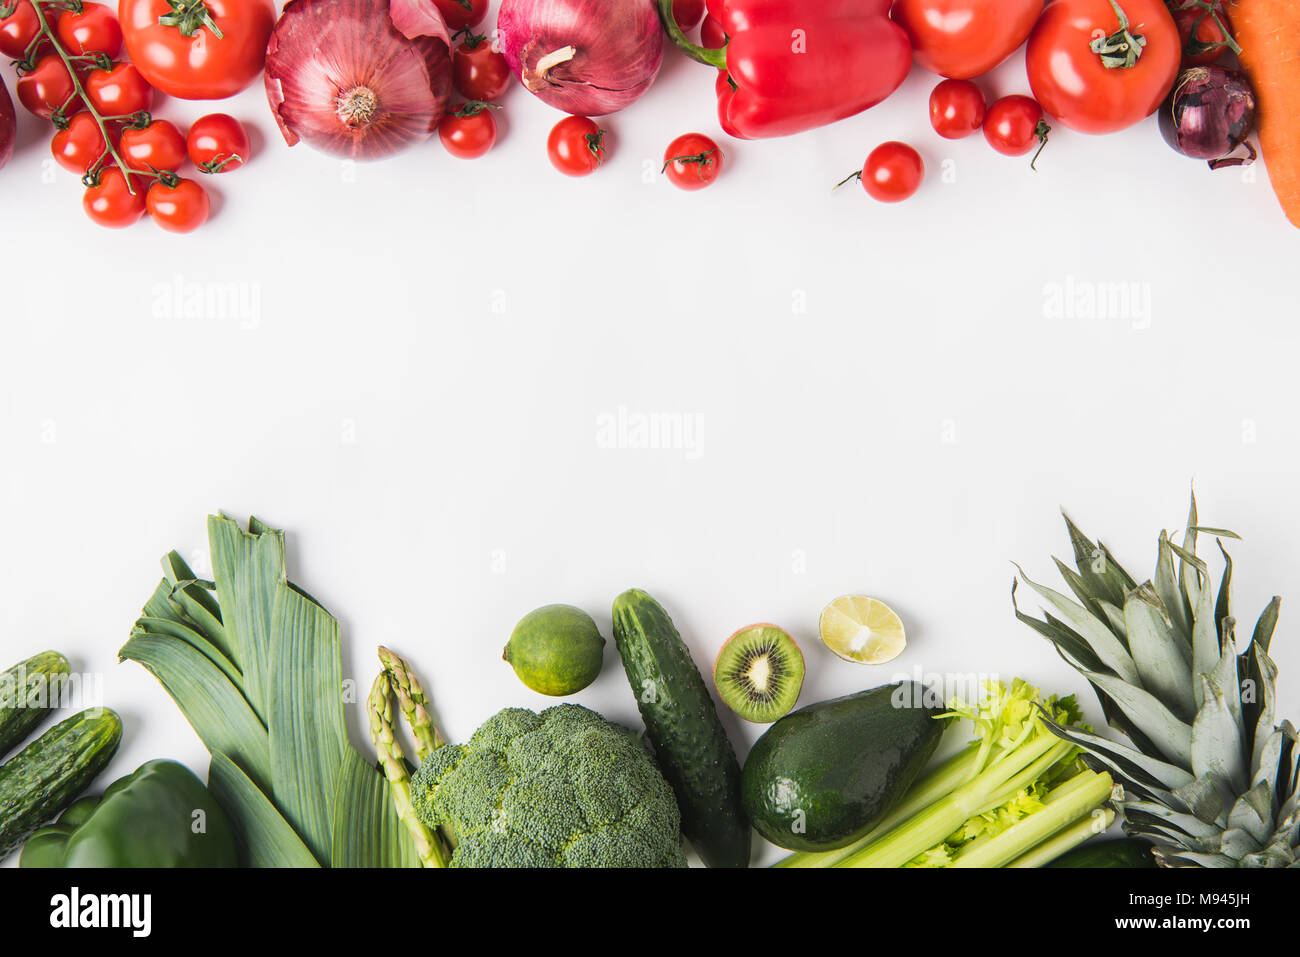 Border of green and red vegetables and fruits isolated on white background Stock Photo